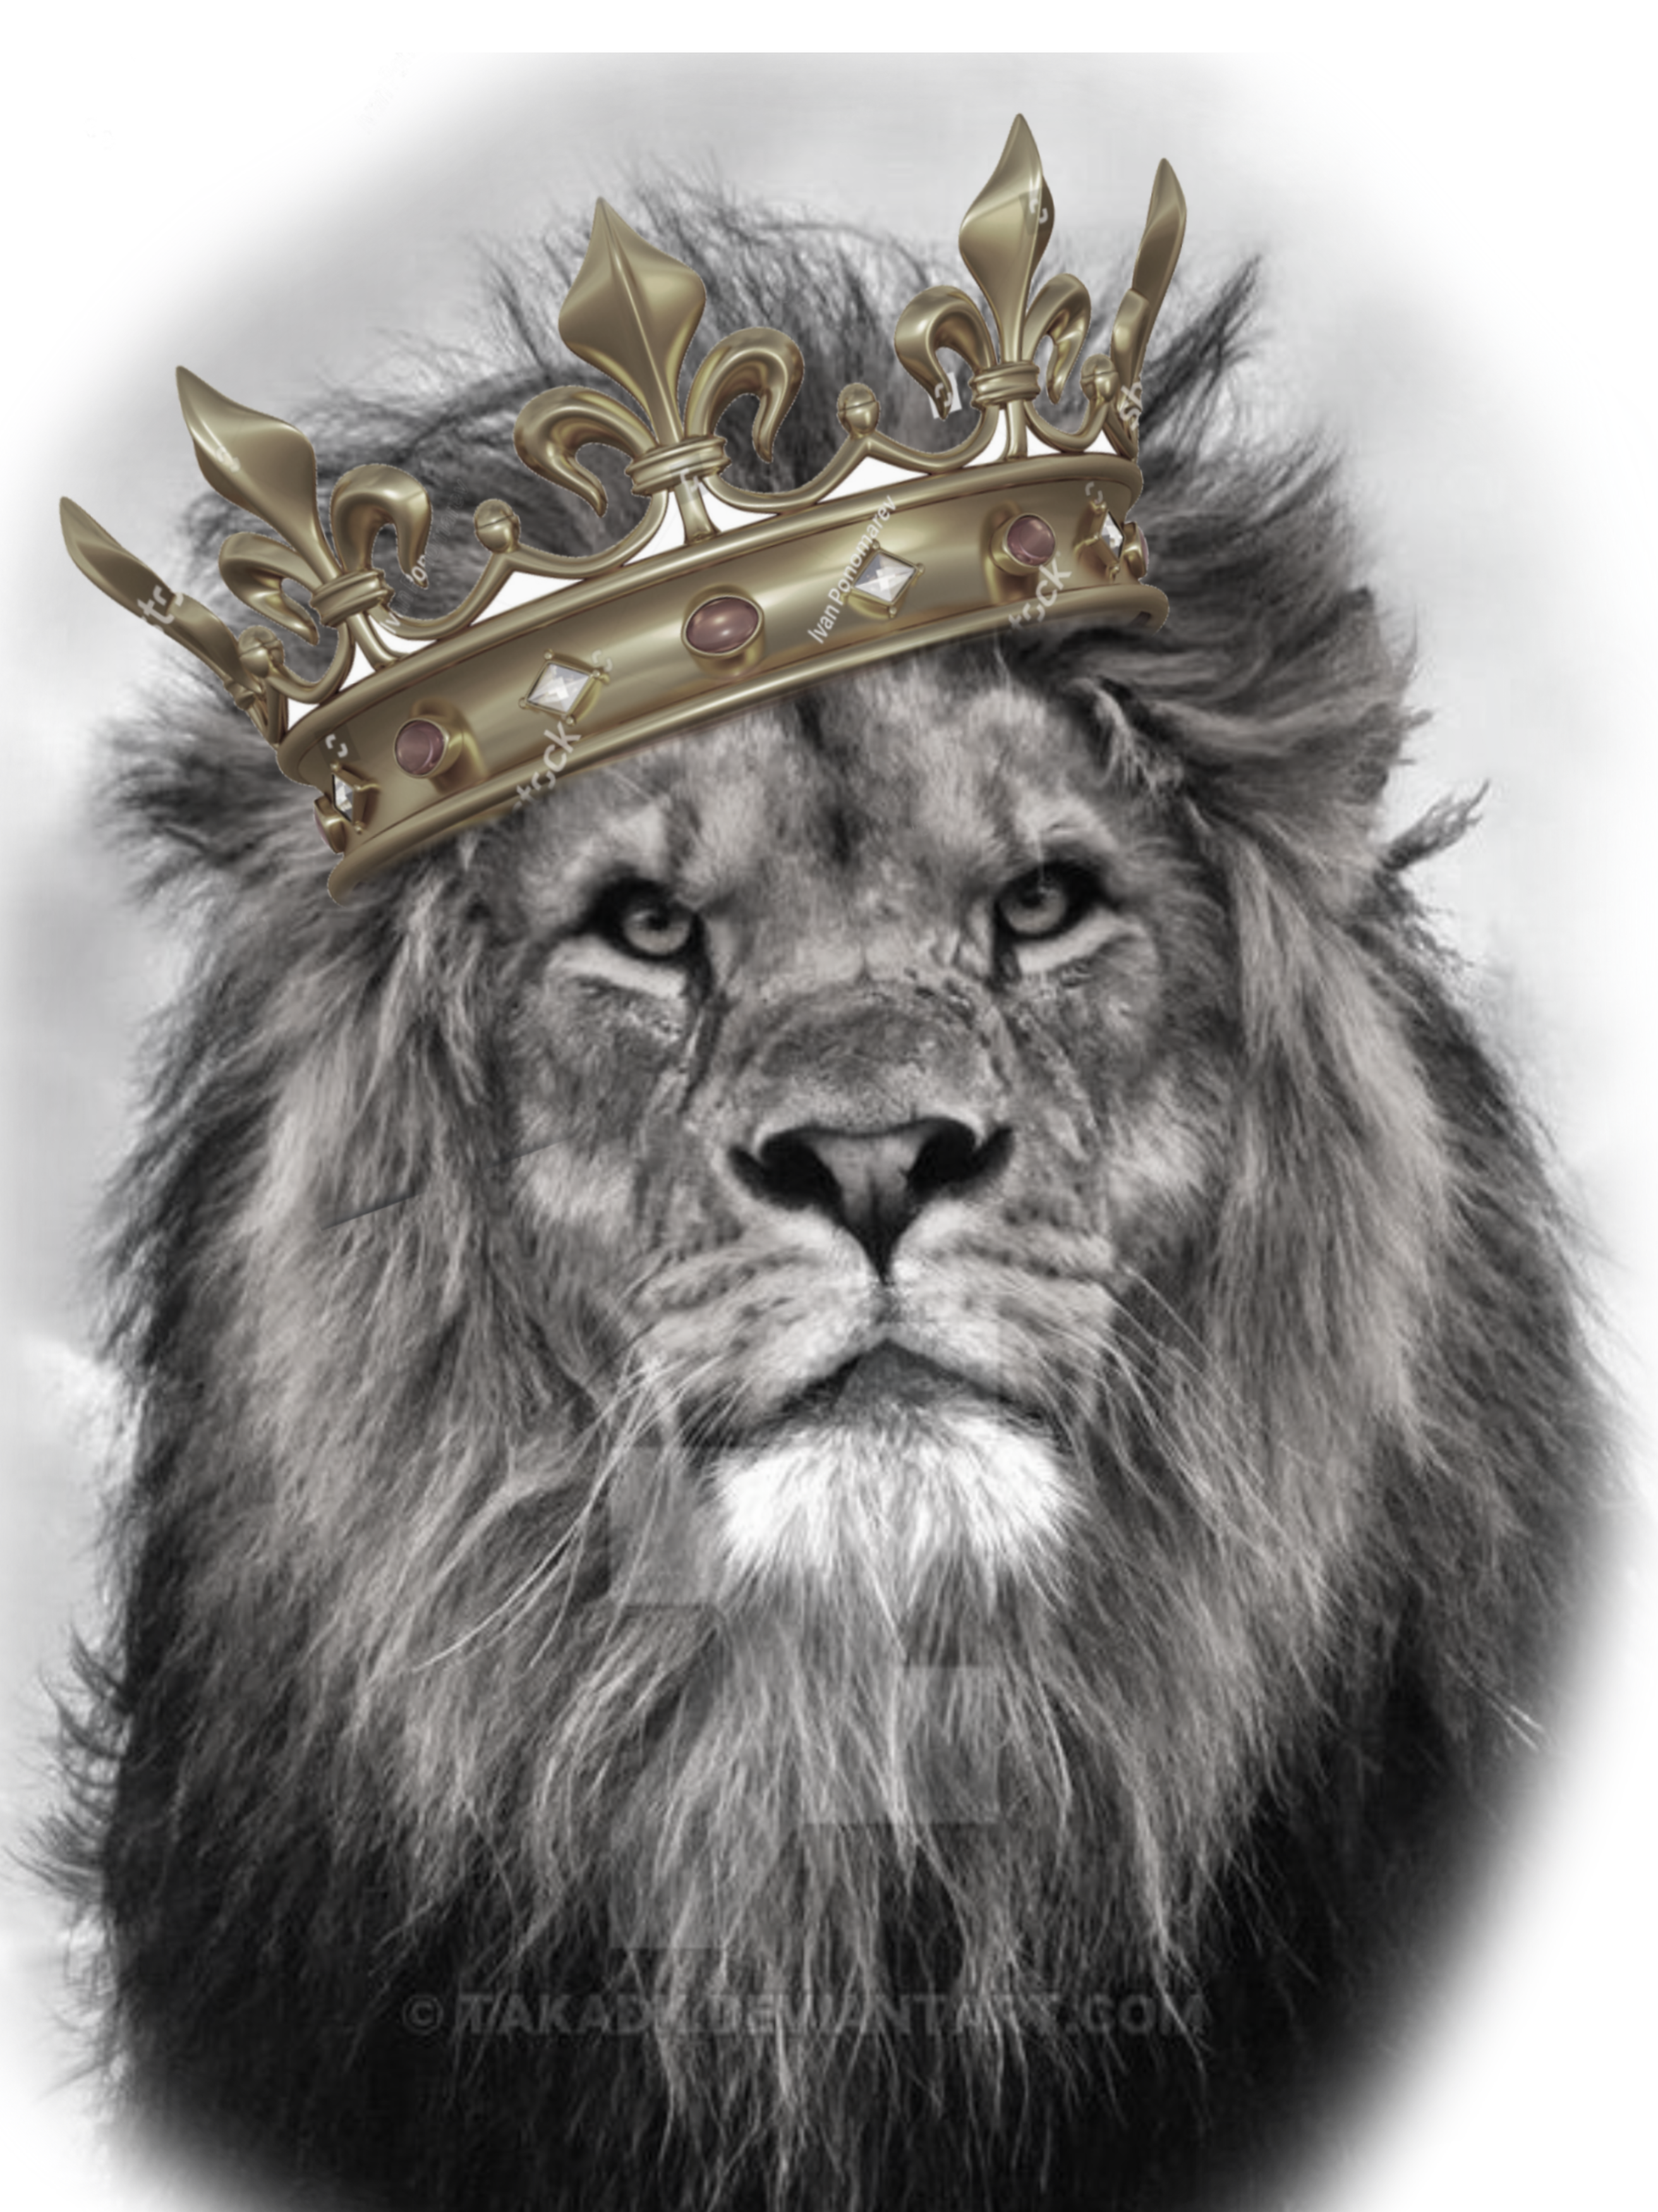 Your Cute My Beautiful King Your Amazing Lion Tattoo Lion Photography Lion Images Lion Pictures